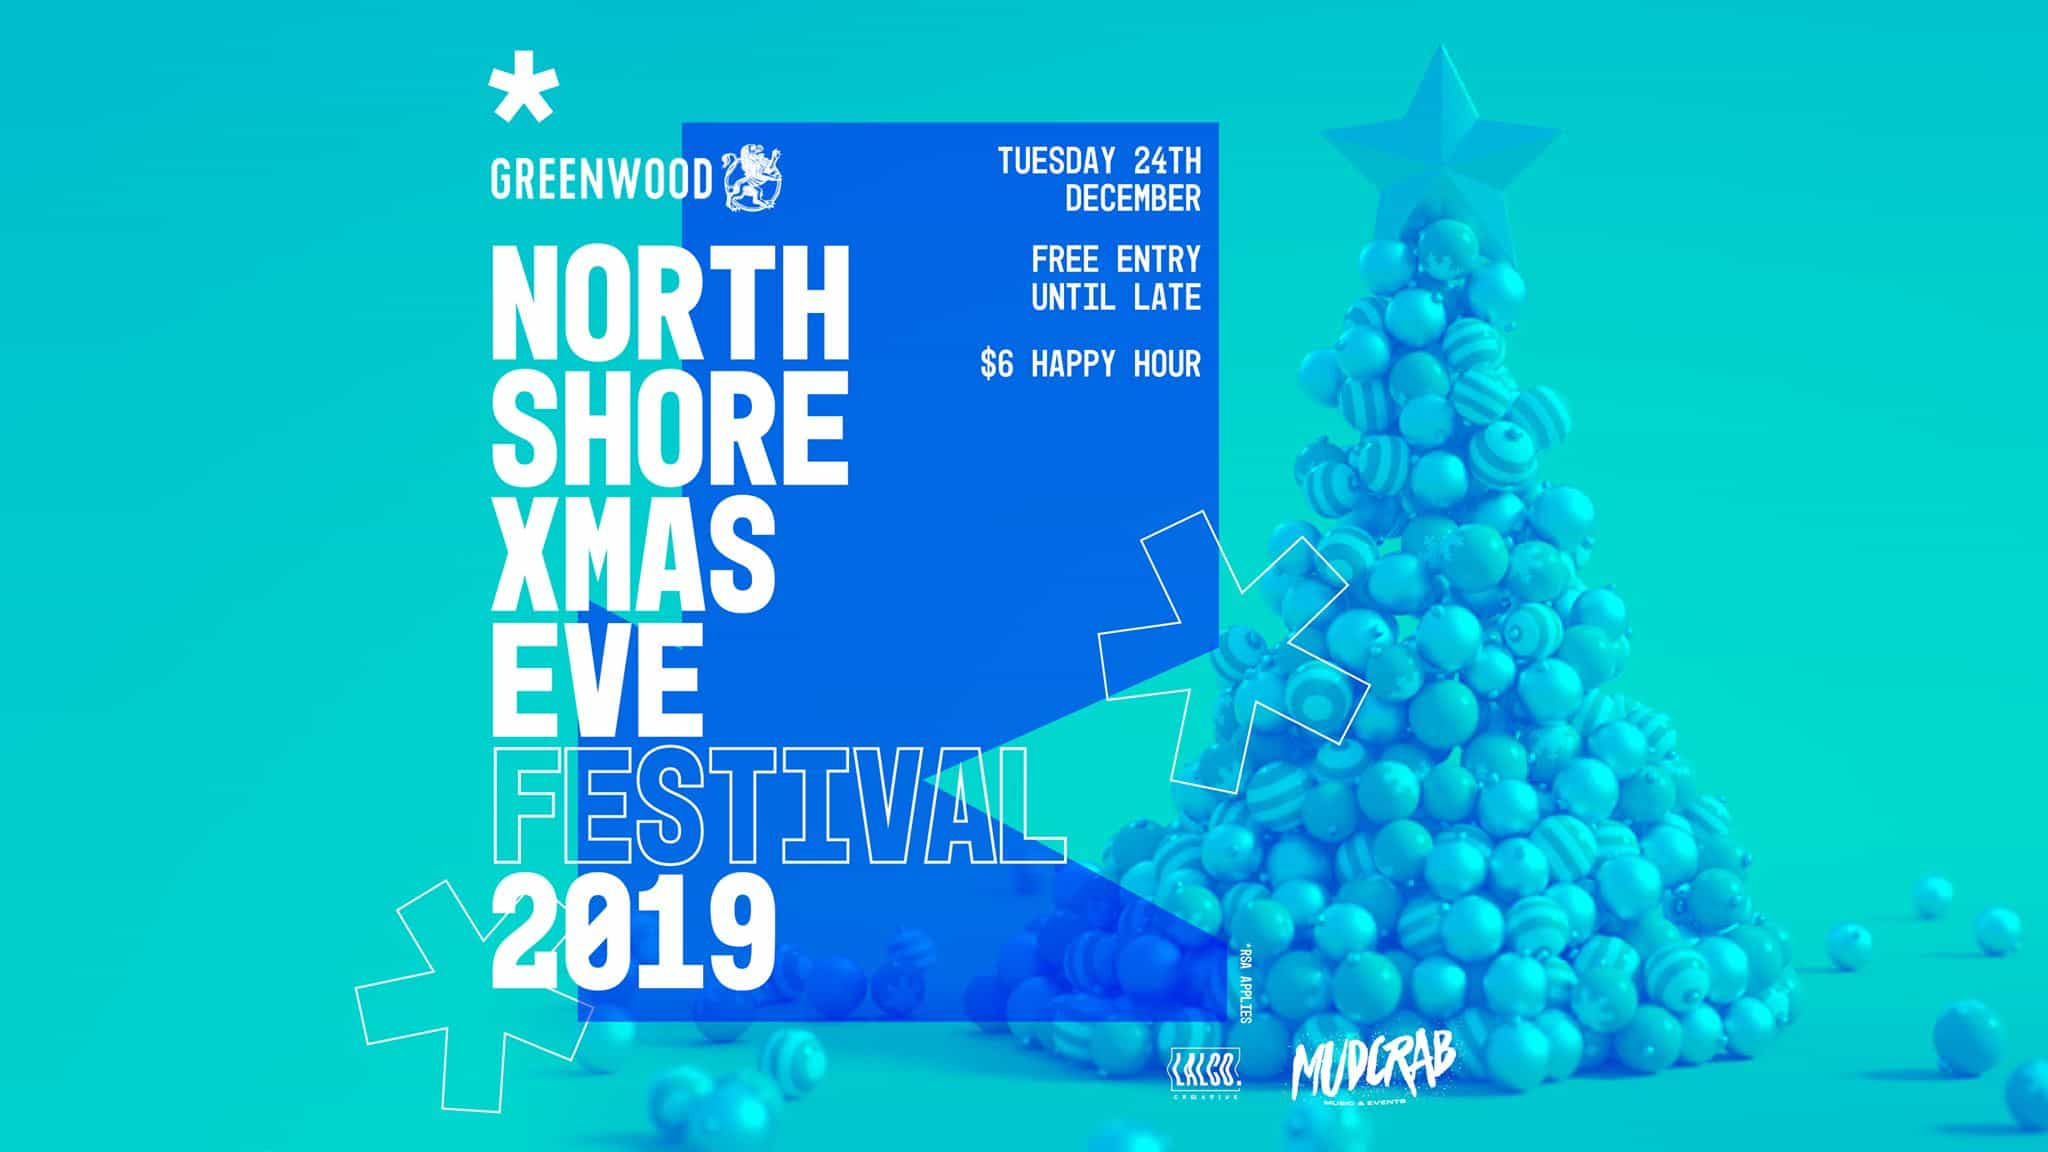 North Shore Xmas Eve Festival - 2019 - Greenwood Hotel